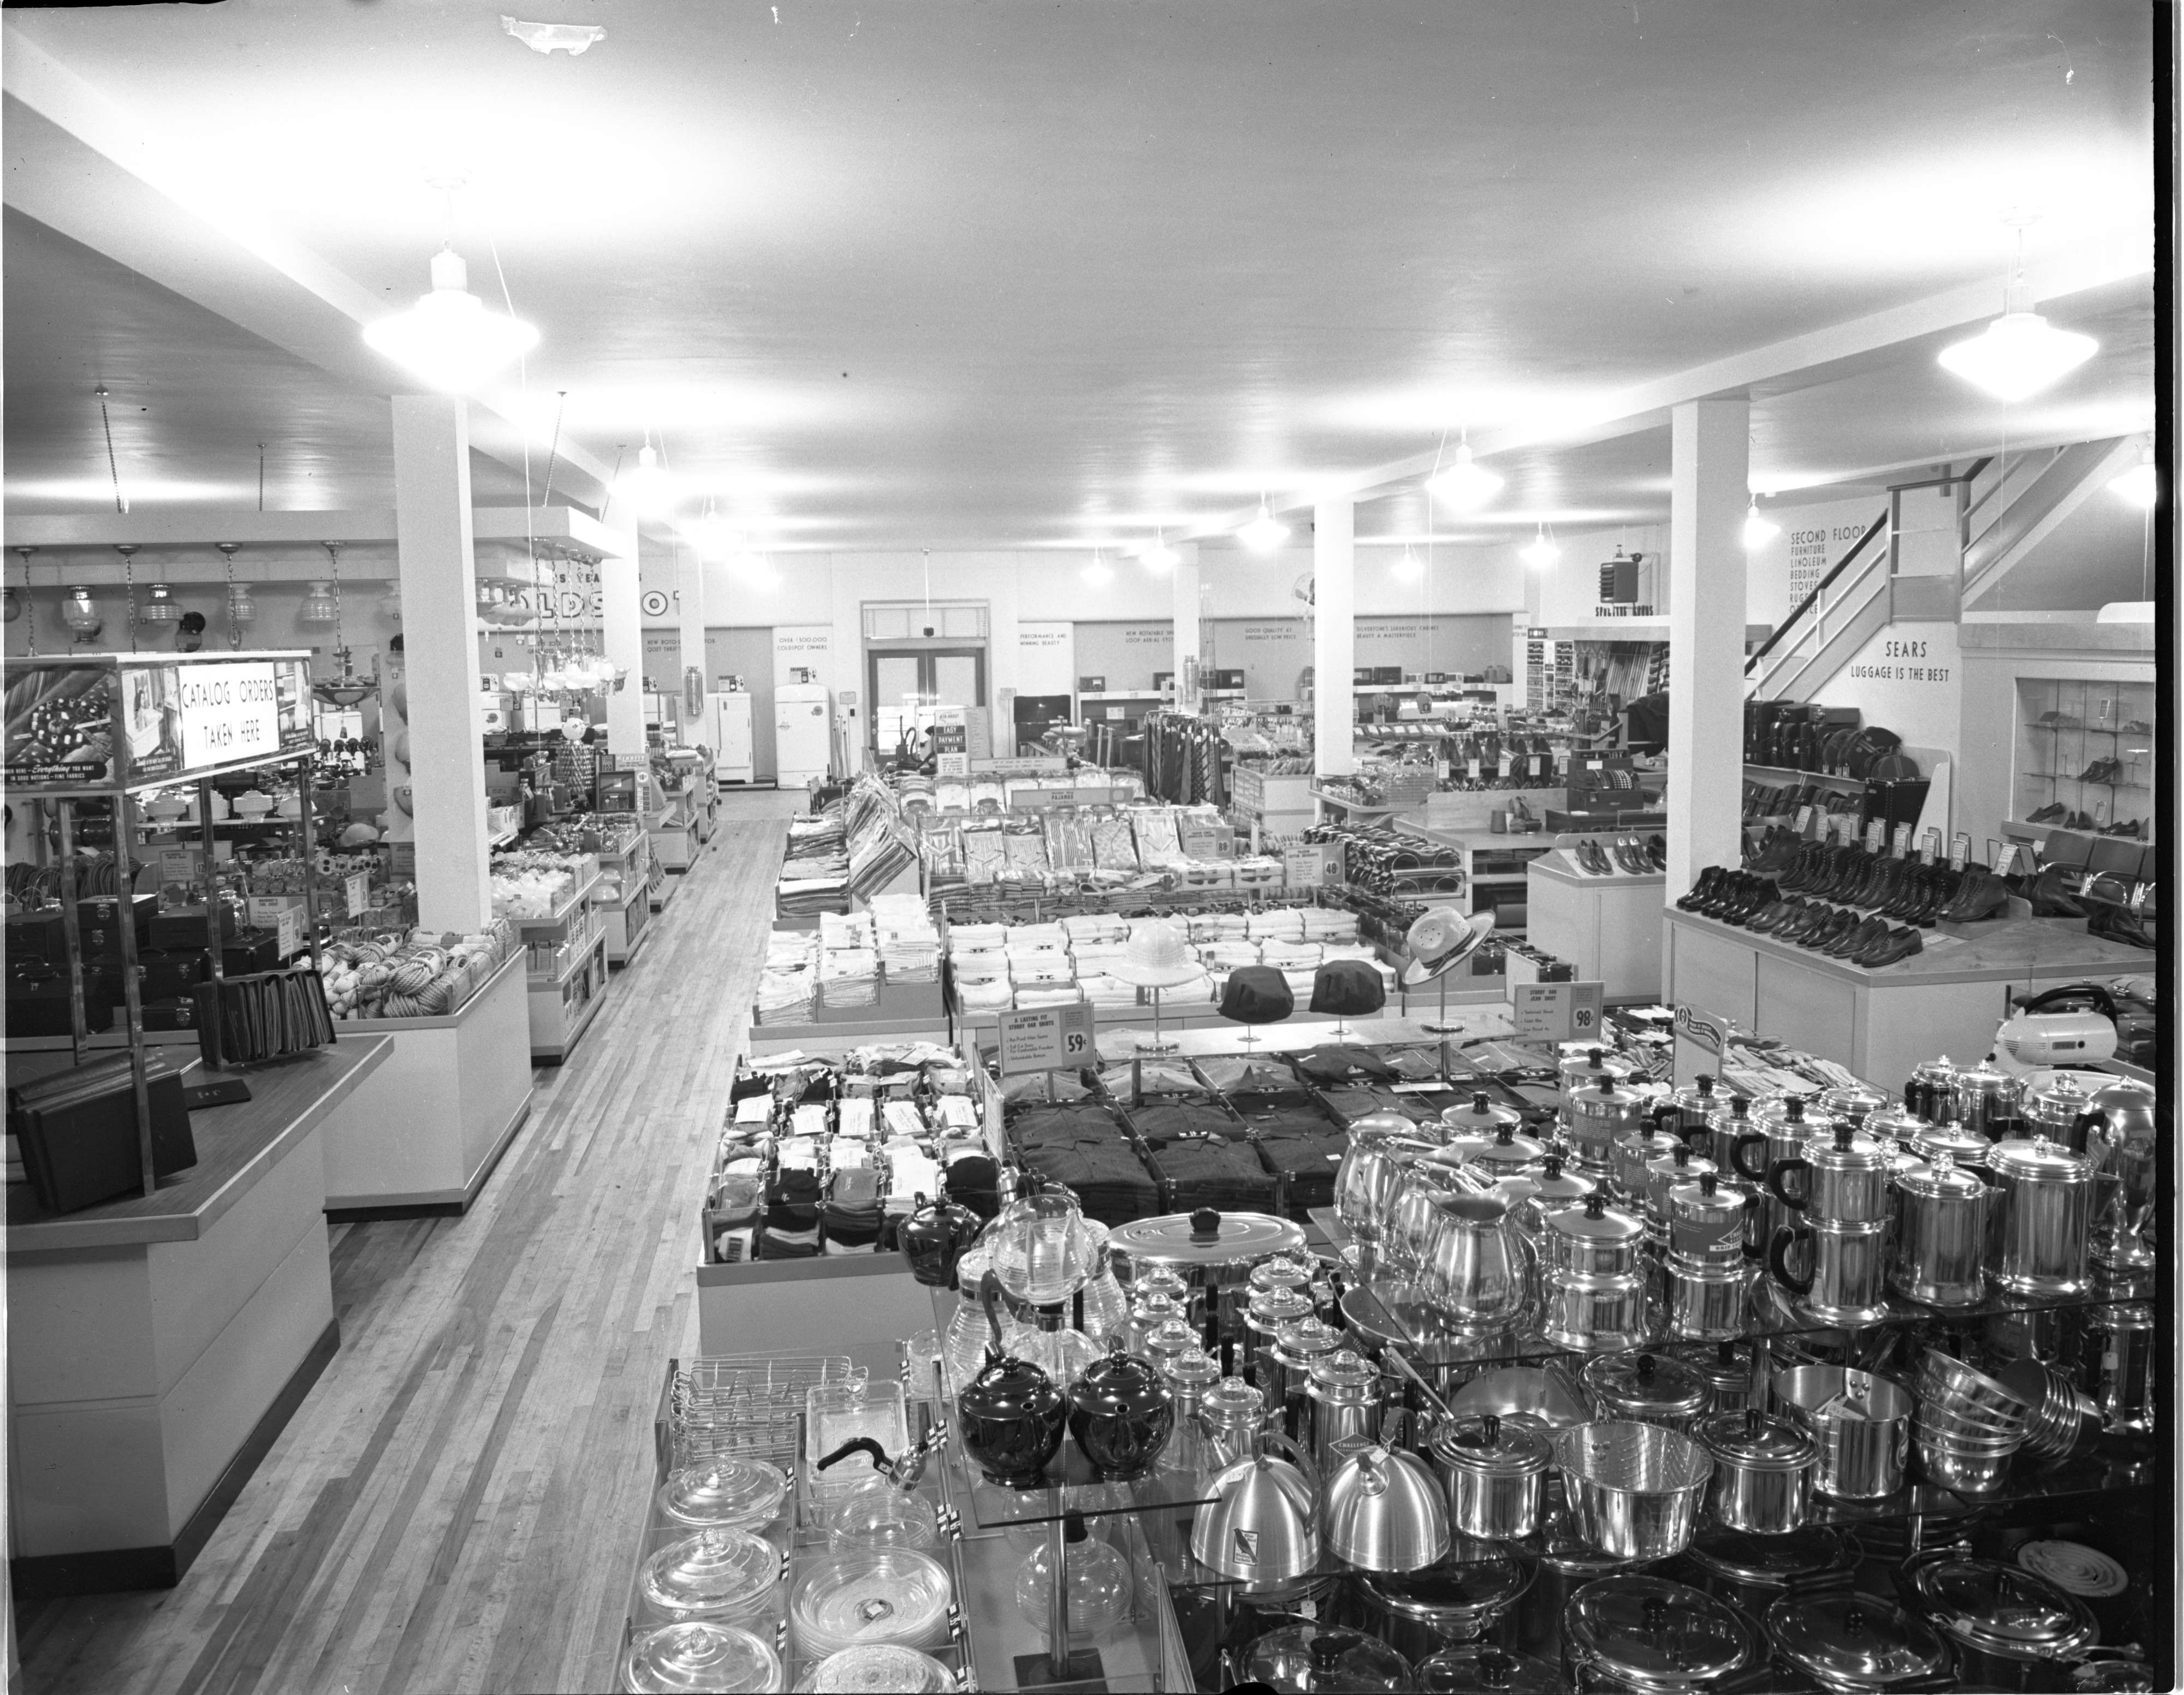 Interior Of New Sears Roebuck Store - 312 S. Main St., March 1941 image